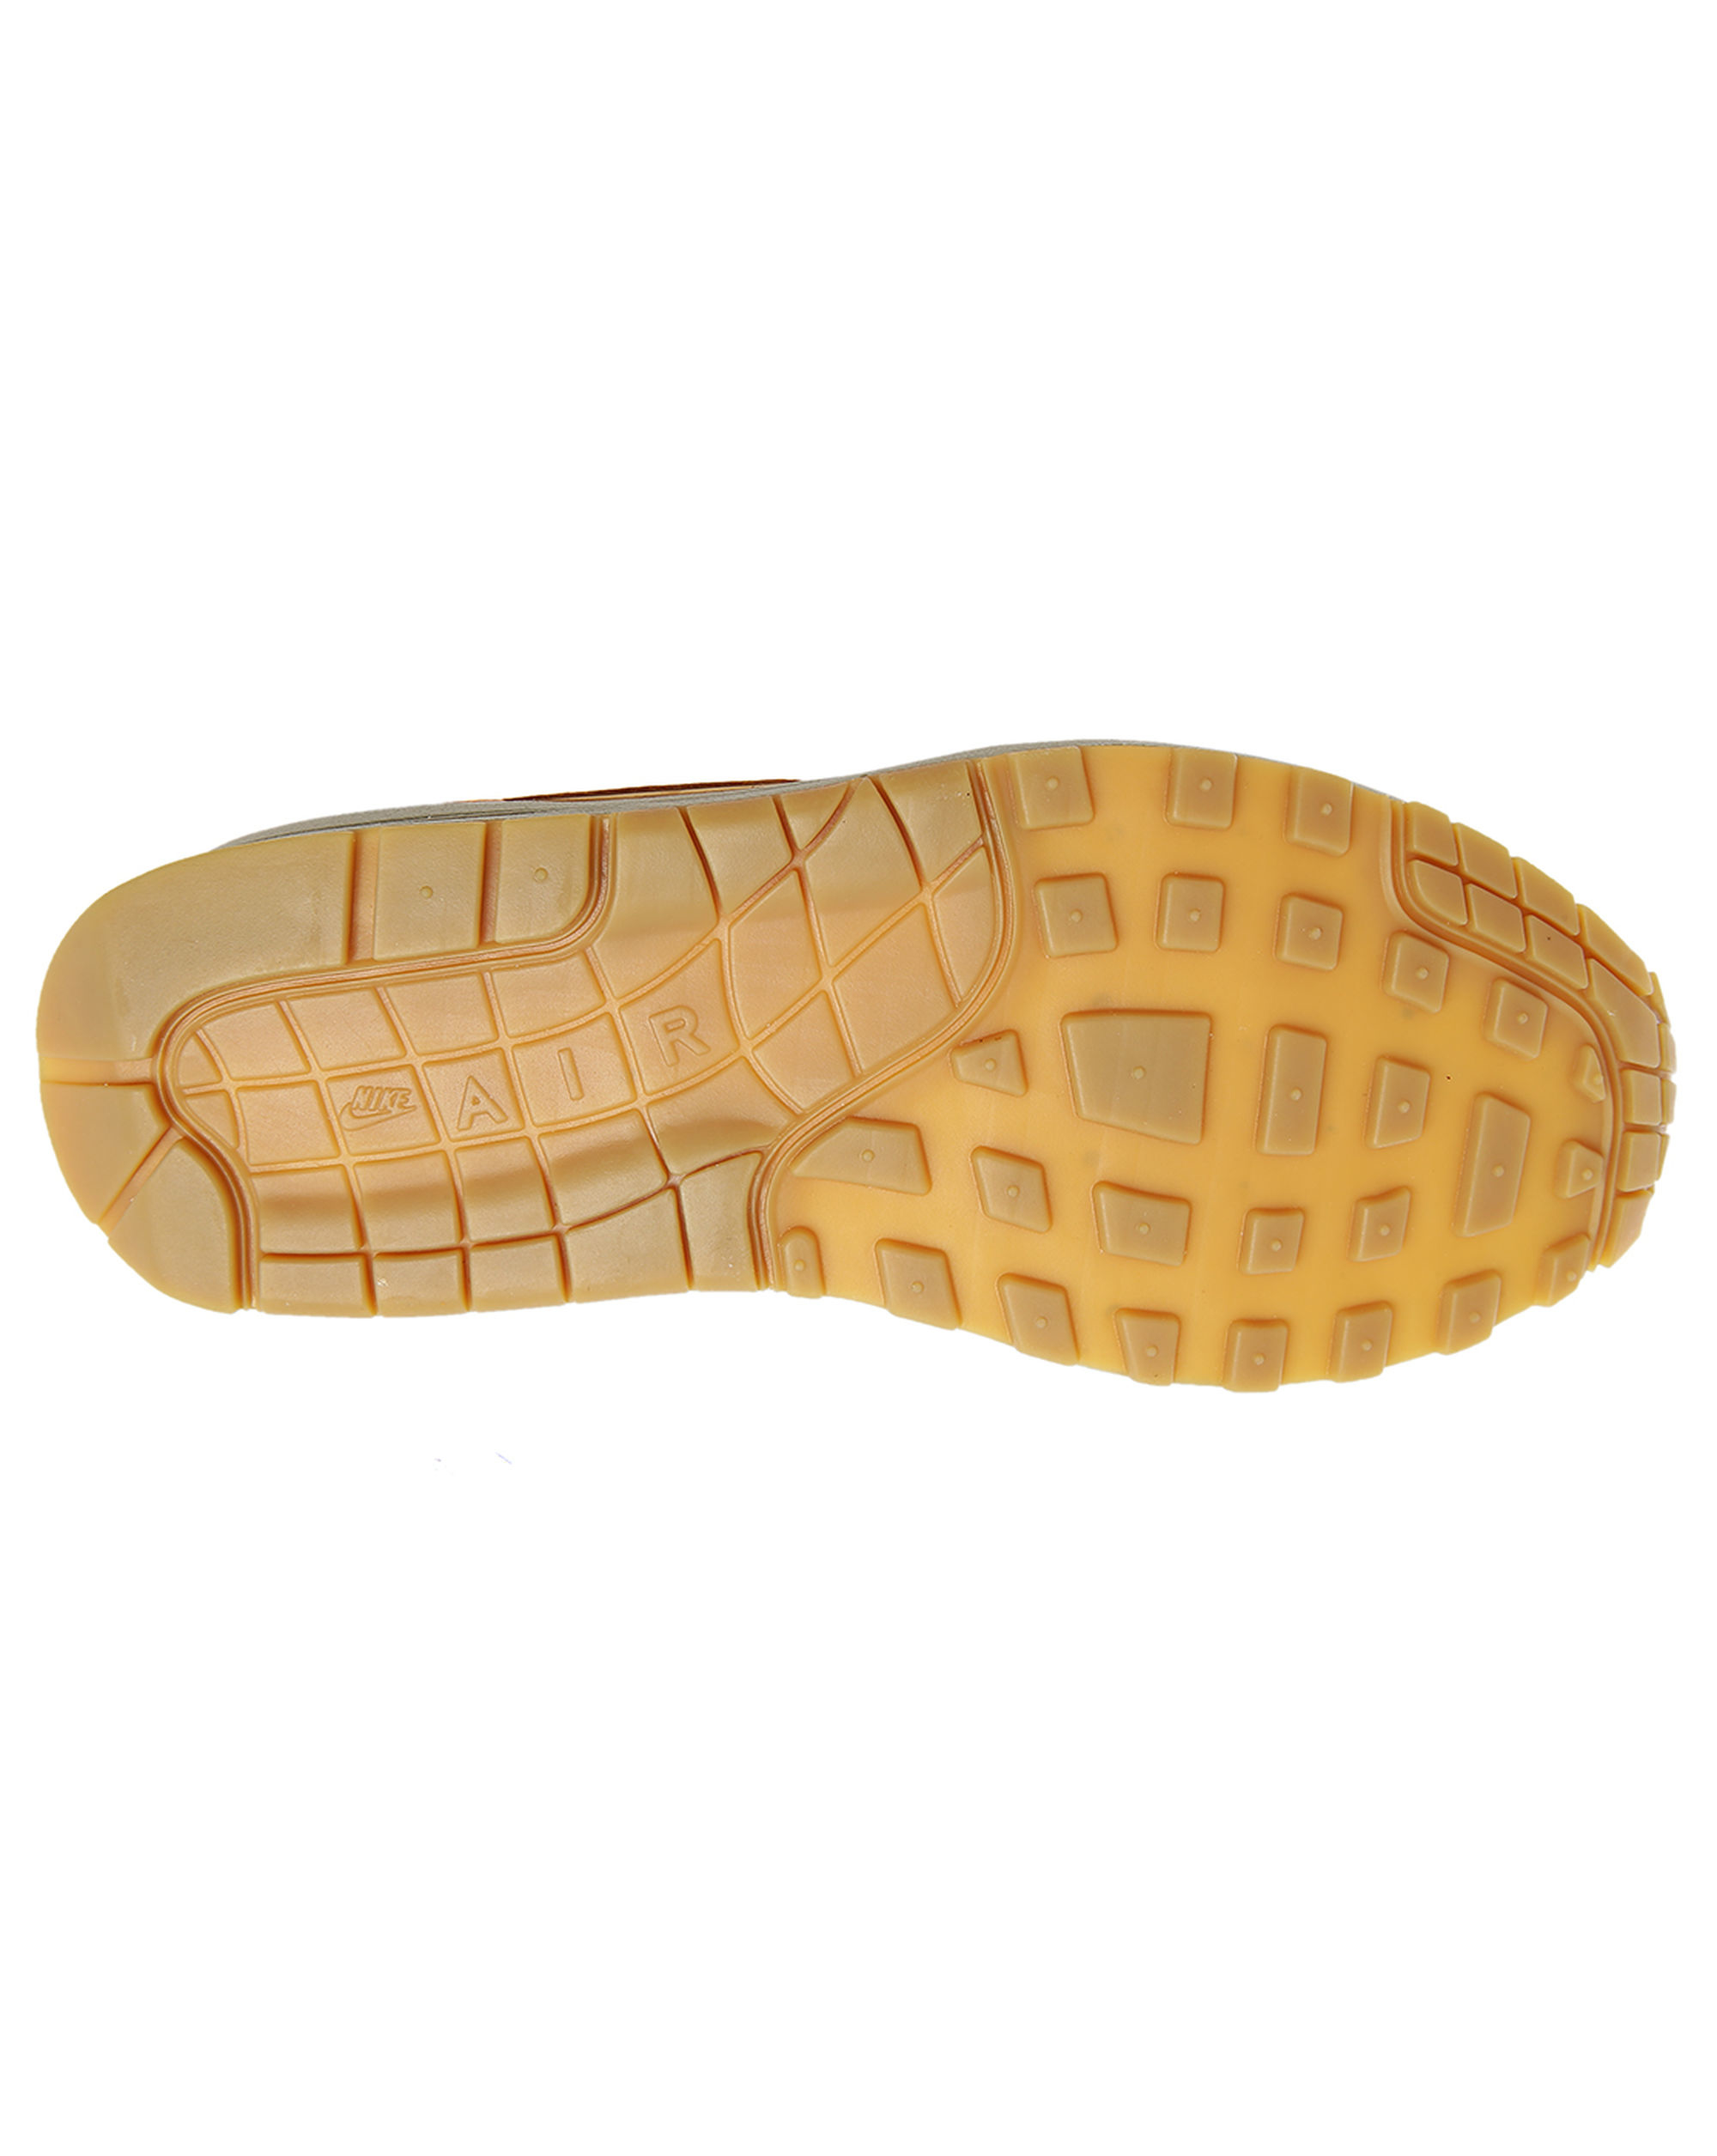 the latest 86b65 4f4ff air yeezy ii 2 sp max 90 camel